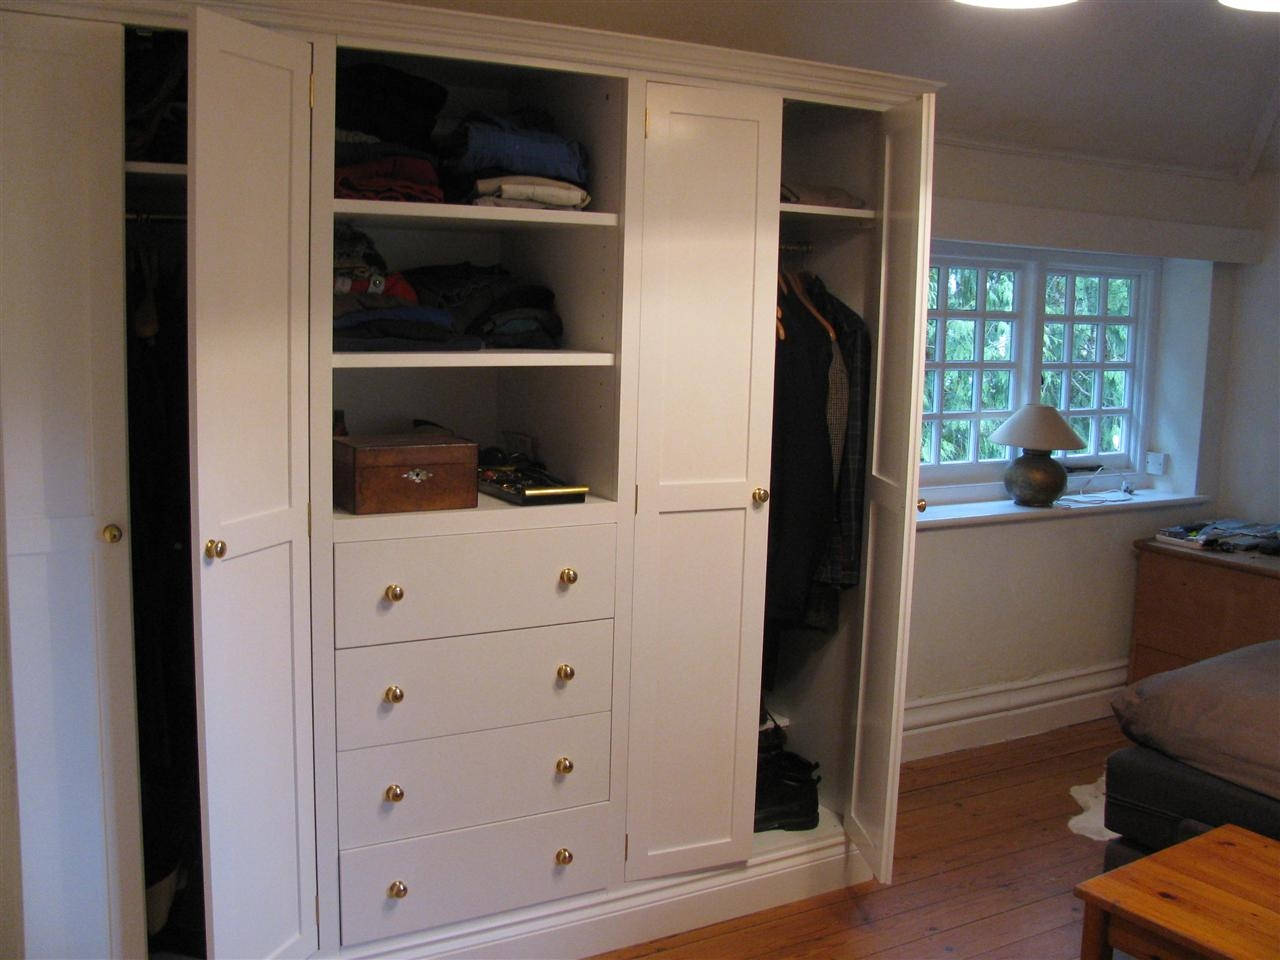 Wardrobes Pertaining To Wardrobe With Drawers And Shelves (View 14 of 15)